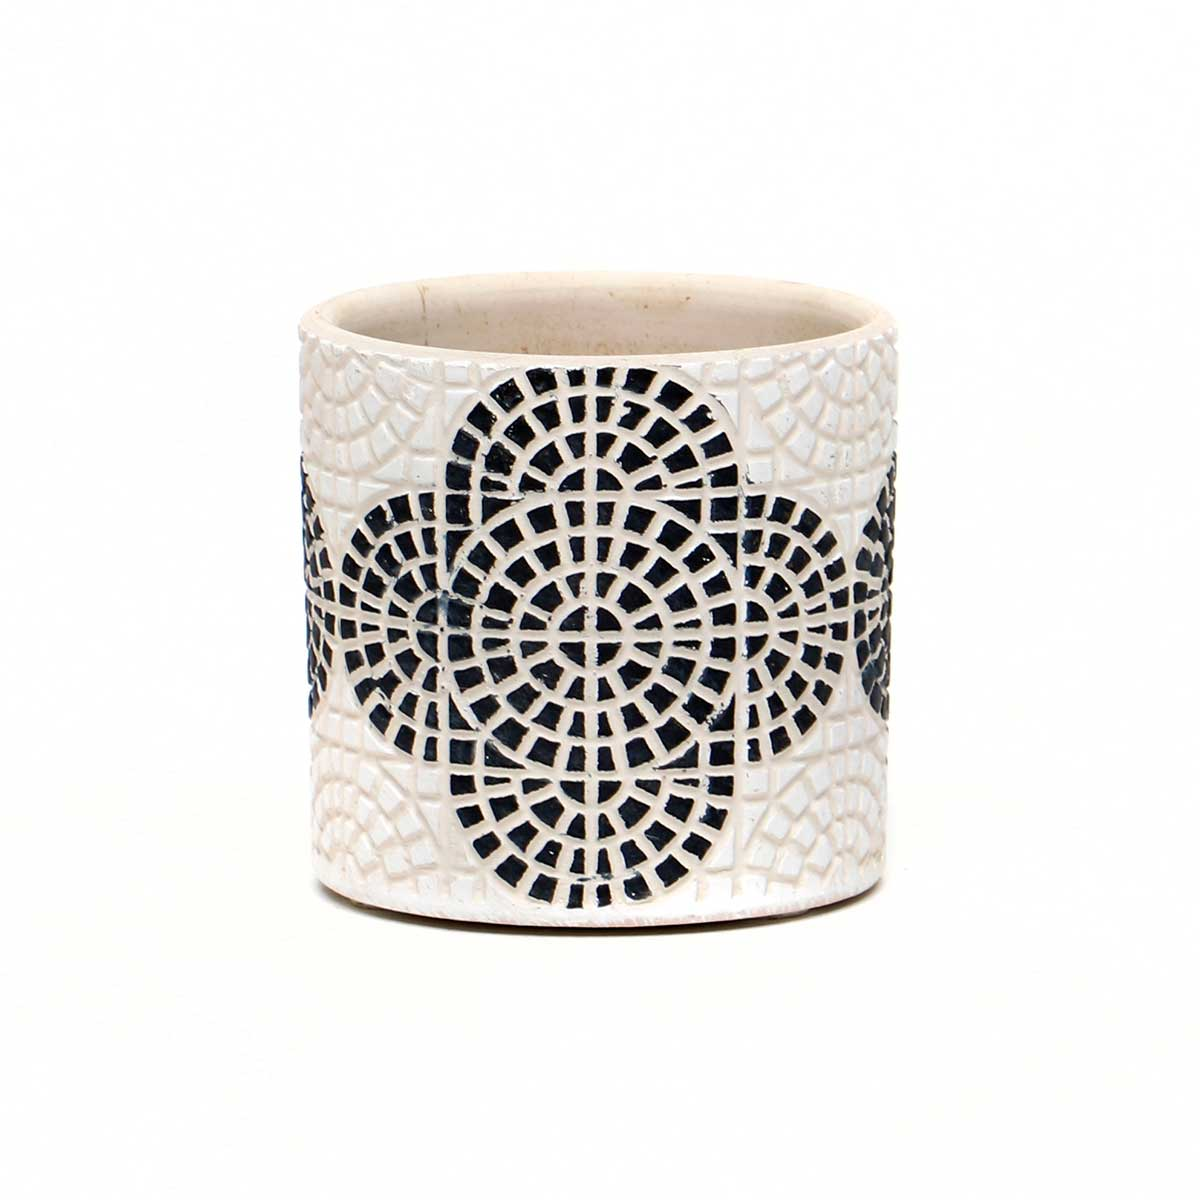 WHITE CONCRETE BLACK MOSAIC PATTERN POT SMALL